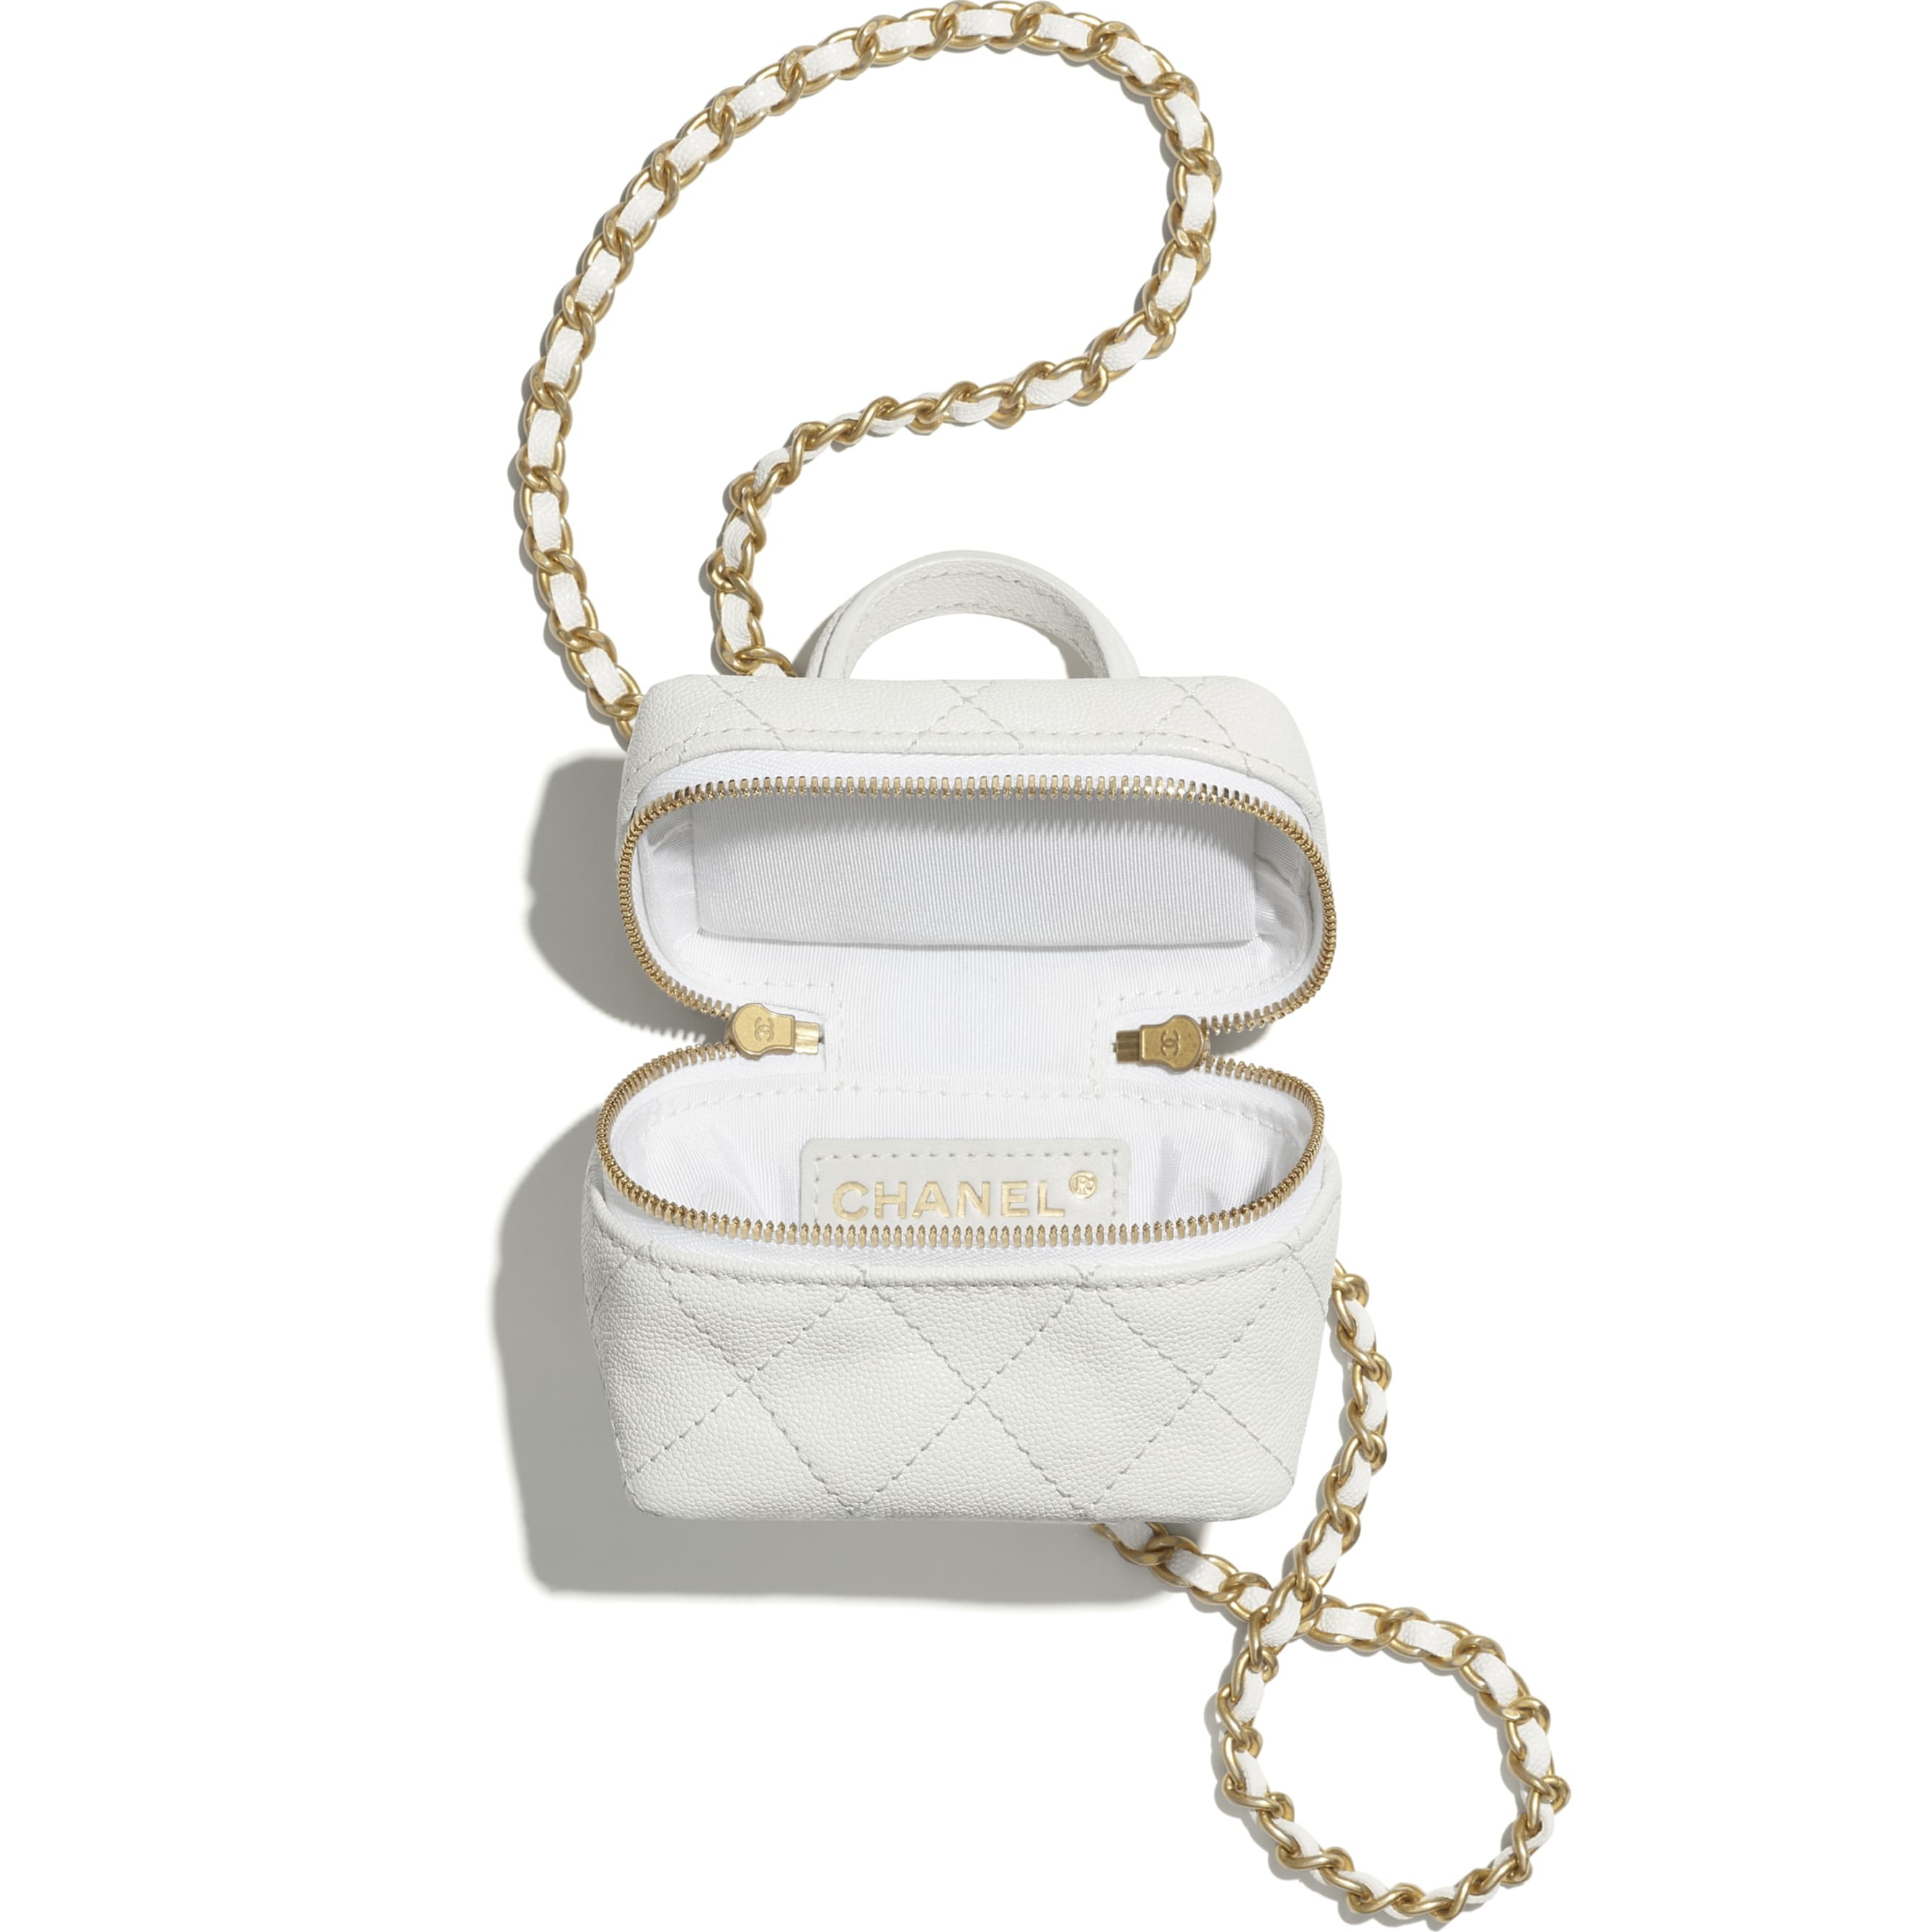 Small Vanity with Chain - White - Grained Calfskin & Gold-Tone Metal - CHANEL - Alternative view - see standard sized version